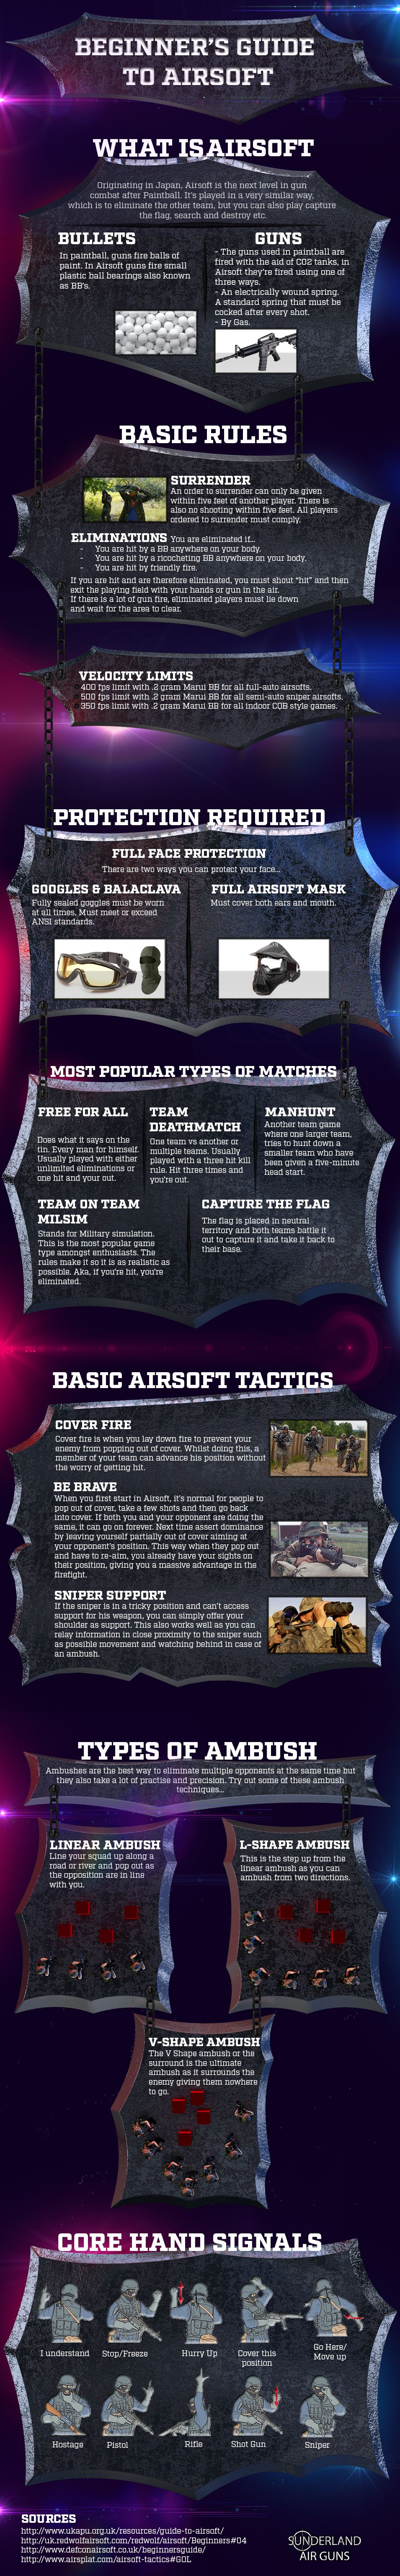 Beginner's Guide To Airsoft